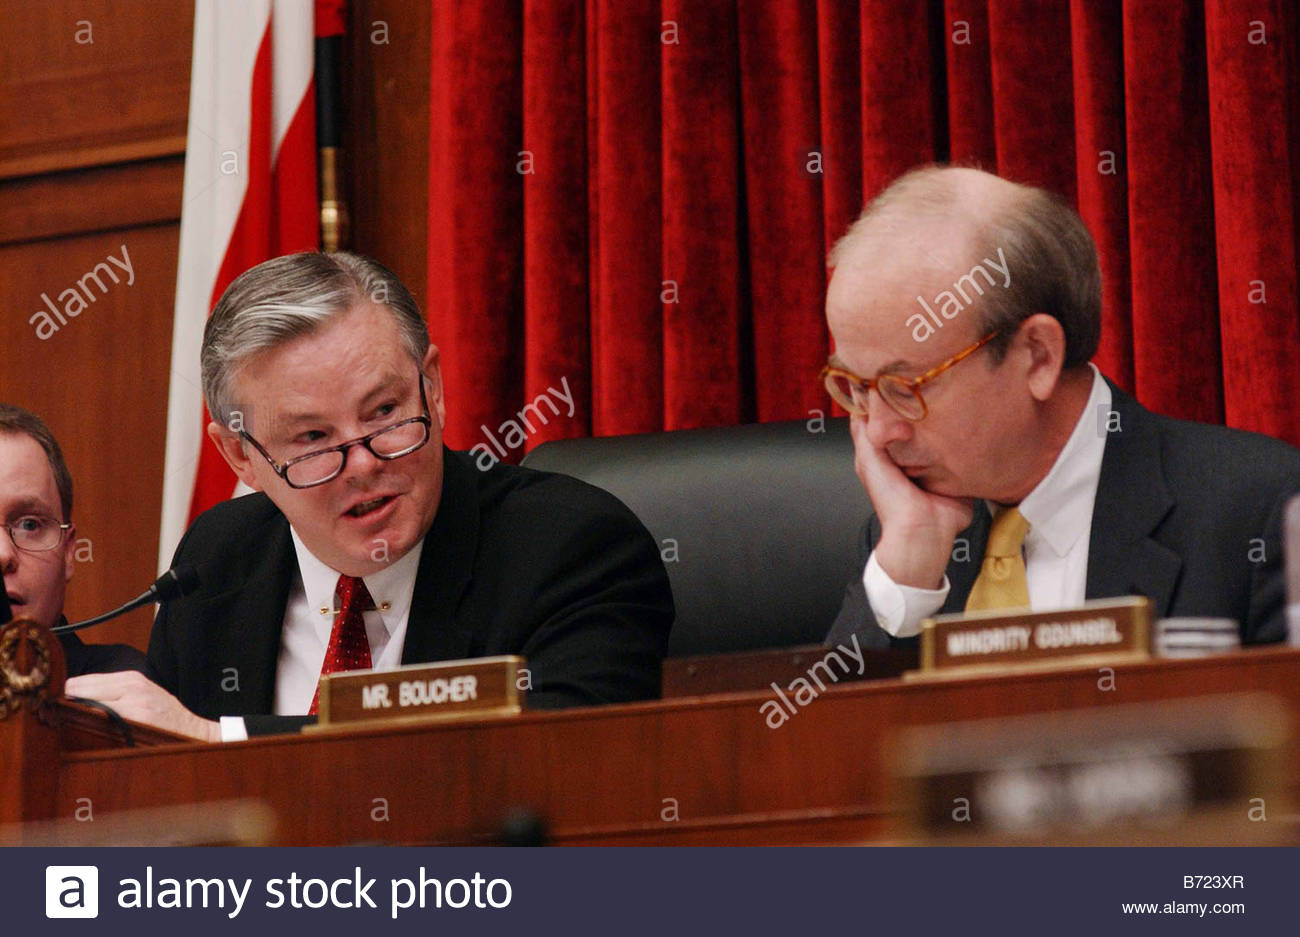 Awesome 3 19 03 OMNIBUS ENERGY LEGISLATION House Energy Subommittee On Energy And  Air Quality Chairman Joe L Barton R Texas And Ranking